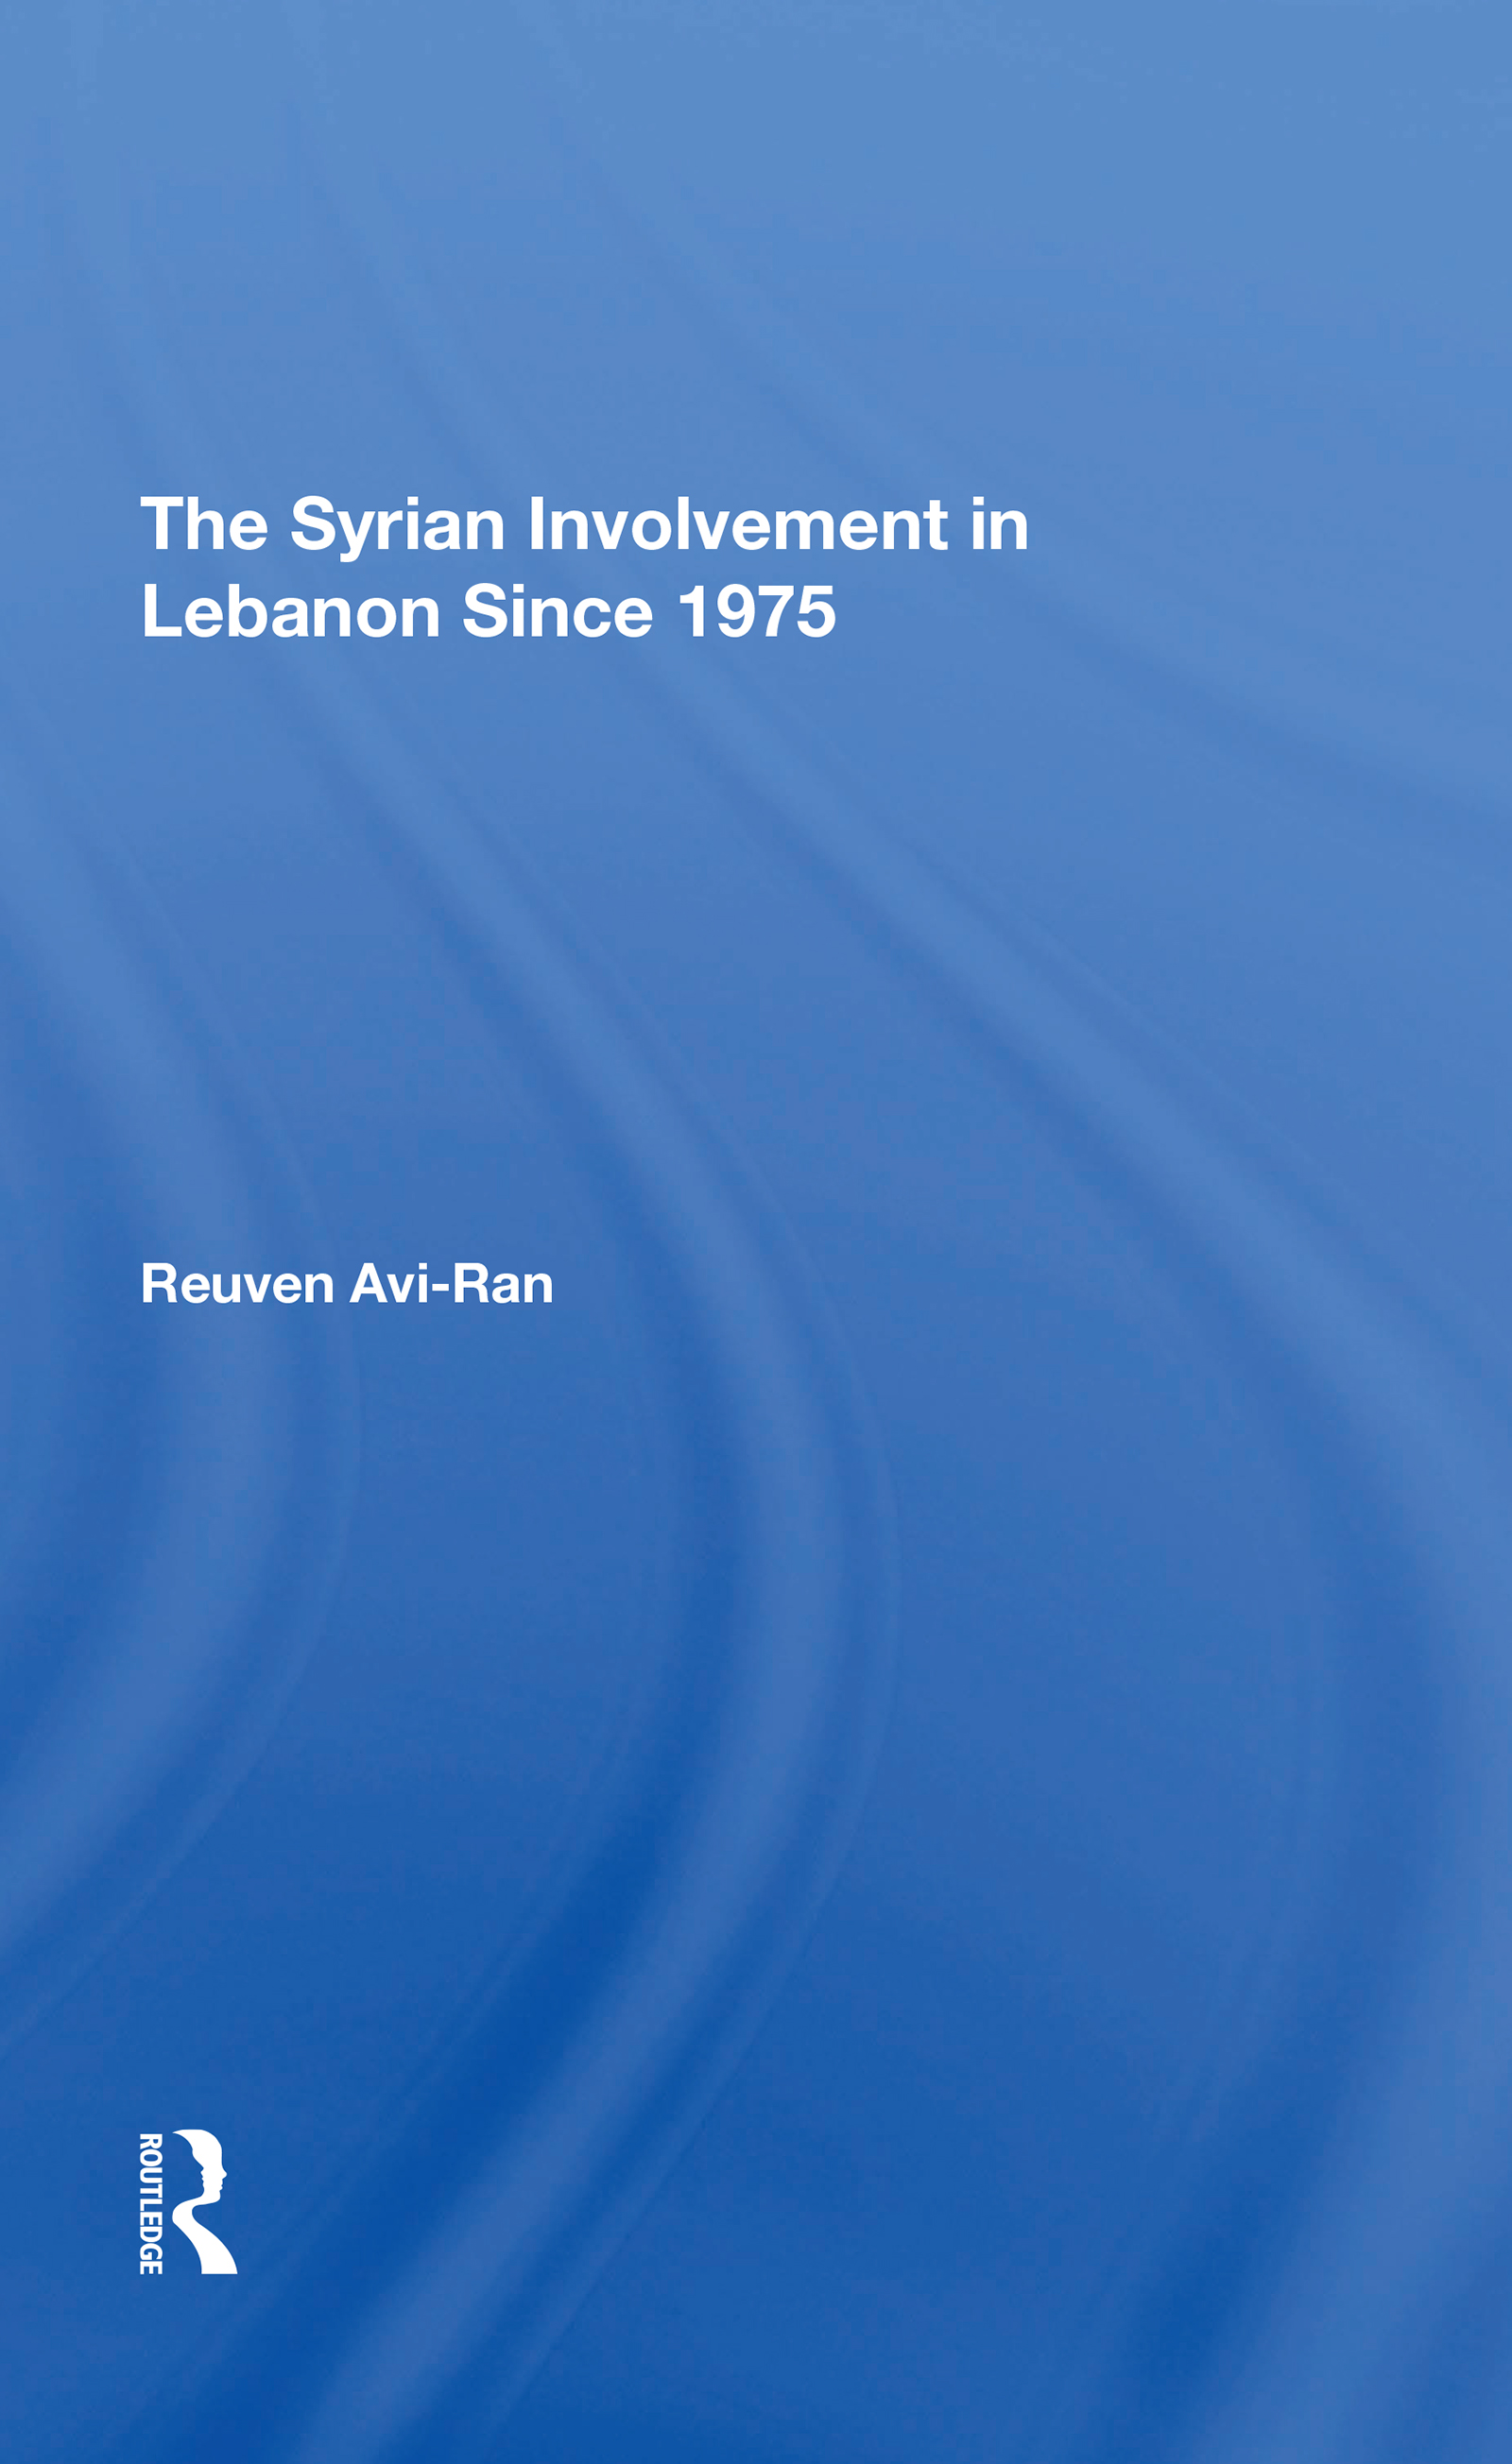 The Syrian Involvement In Lebanon Since 1975